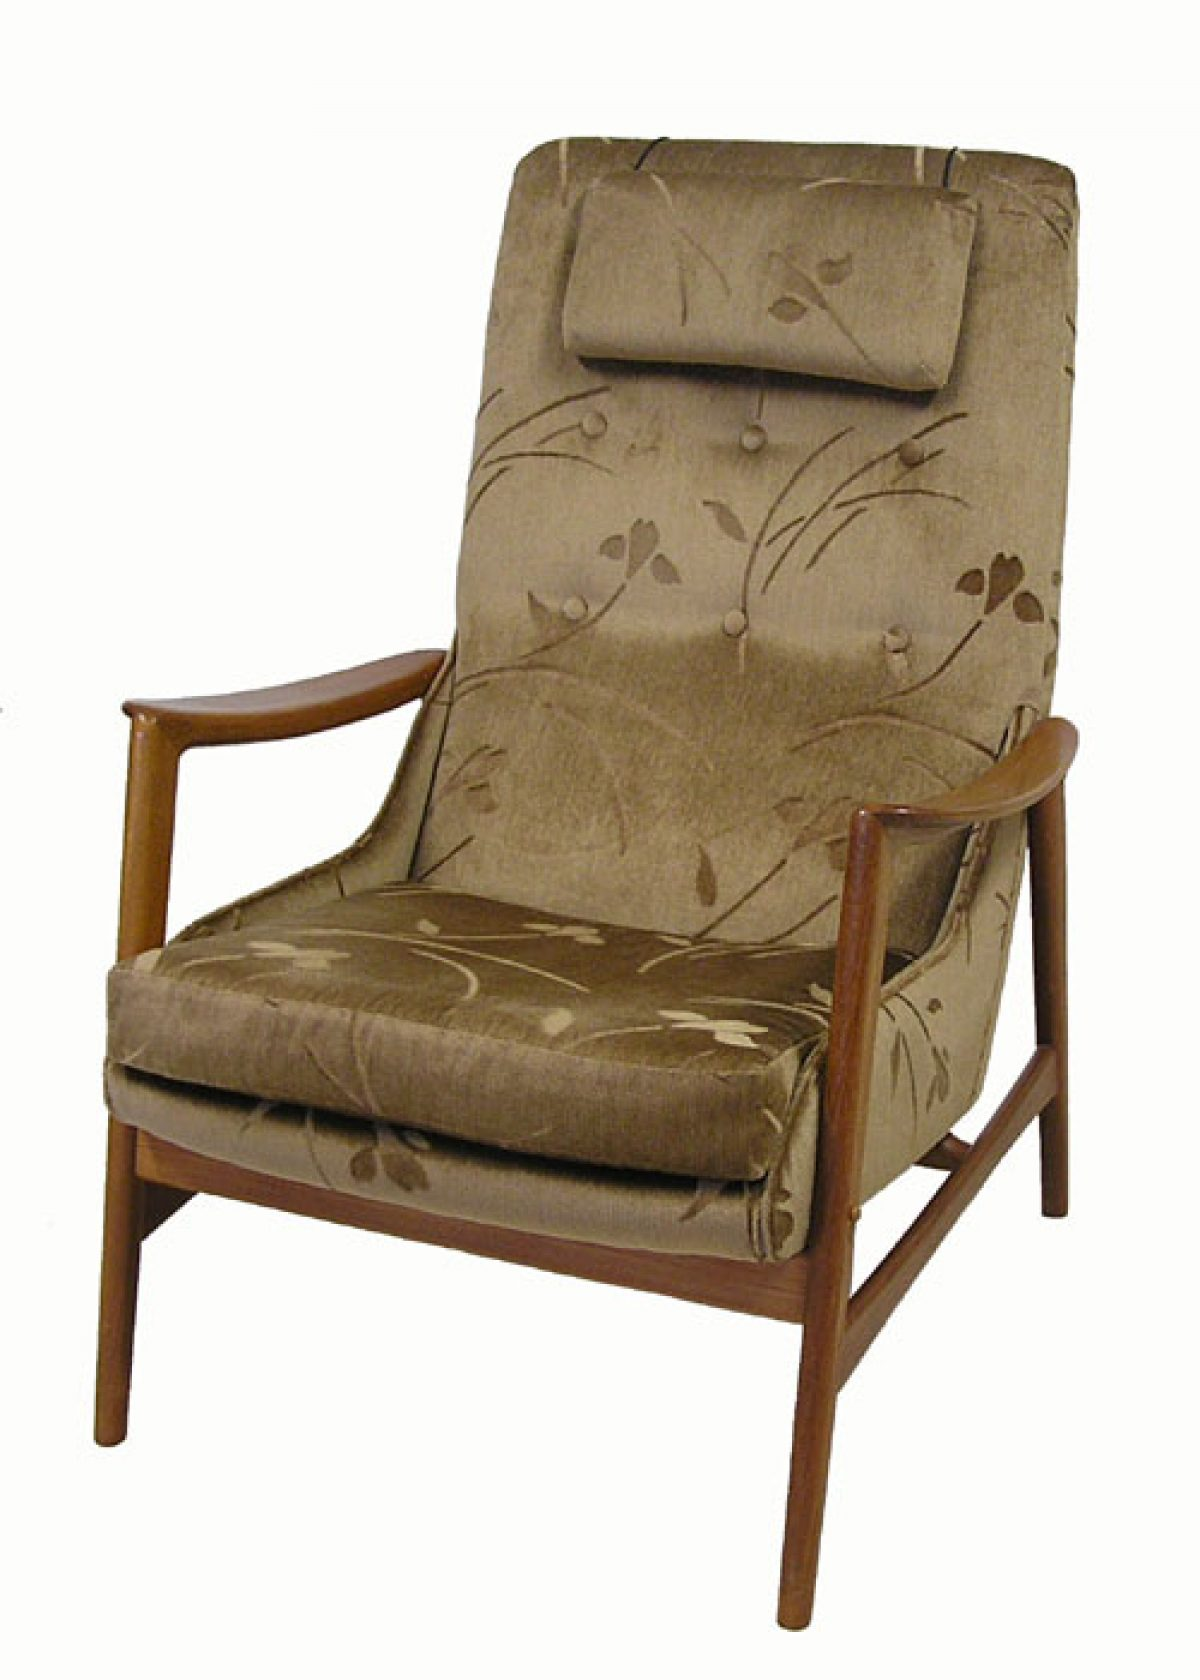 high back easy chair columbia bath 1960 70s teak r huber  hoopers modern